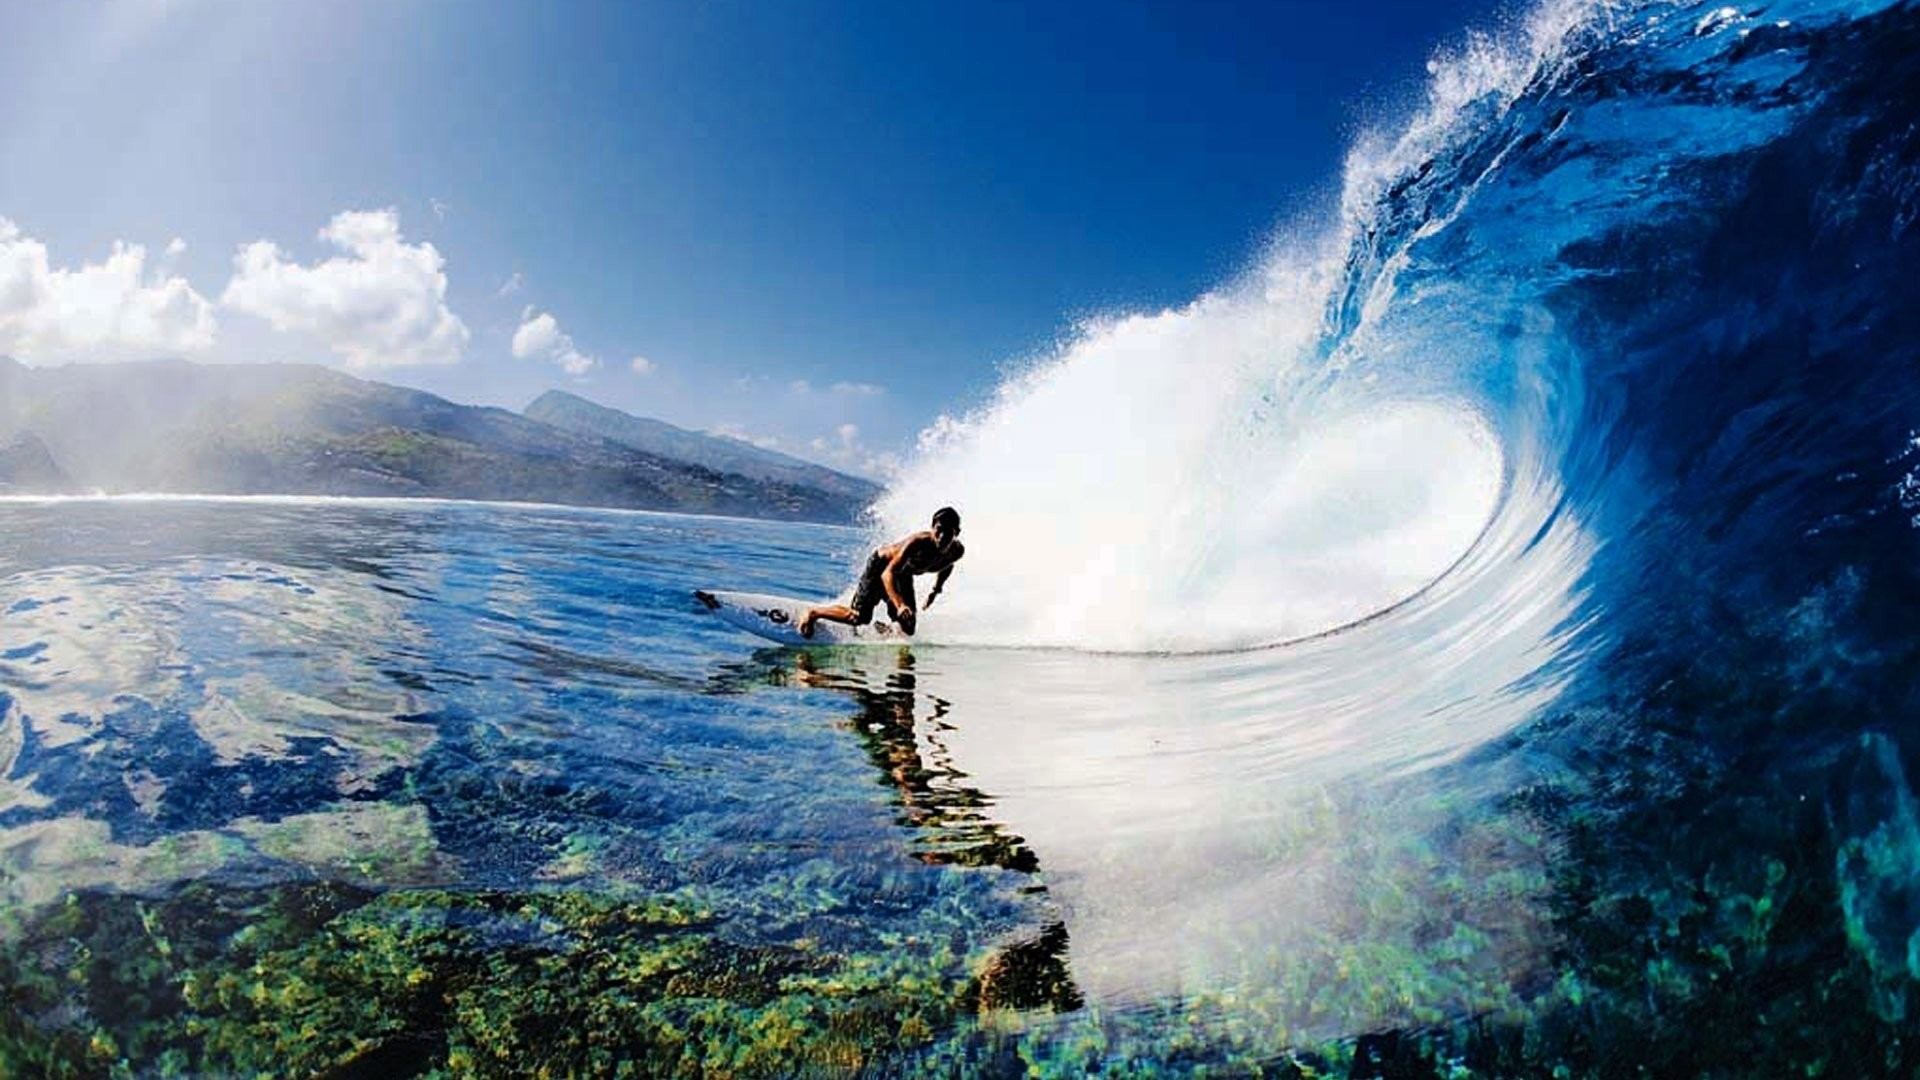 82 Hd Surf Wallpapers on WallpaperPlay 1920x1080